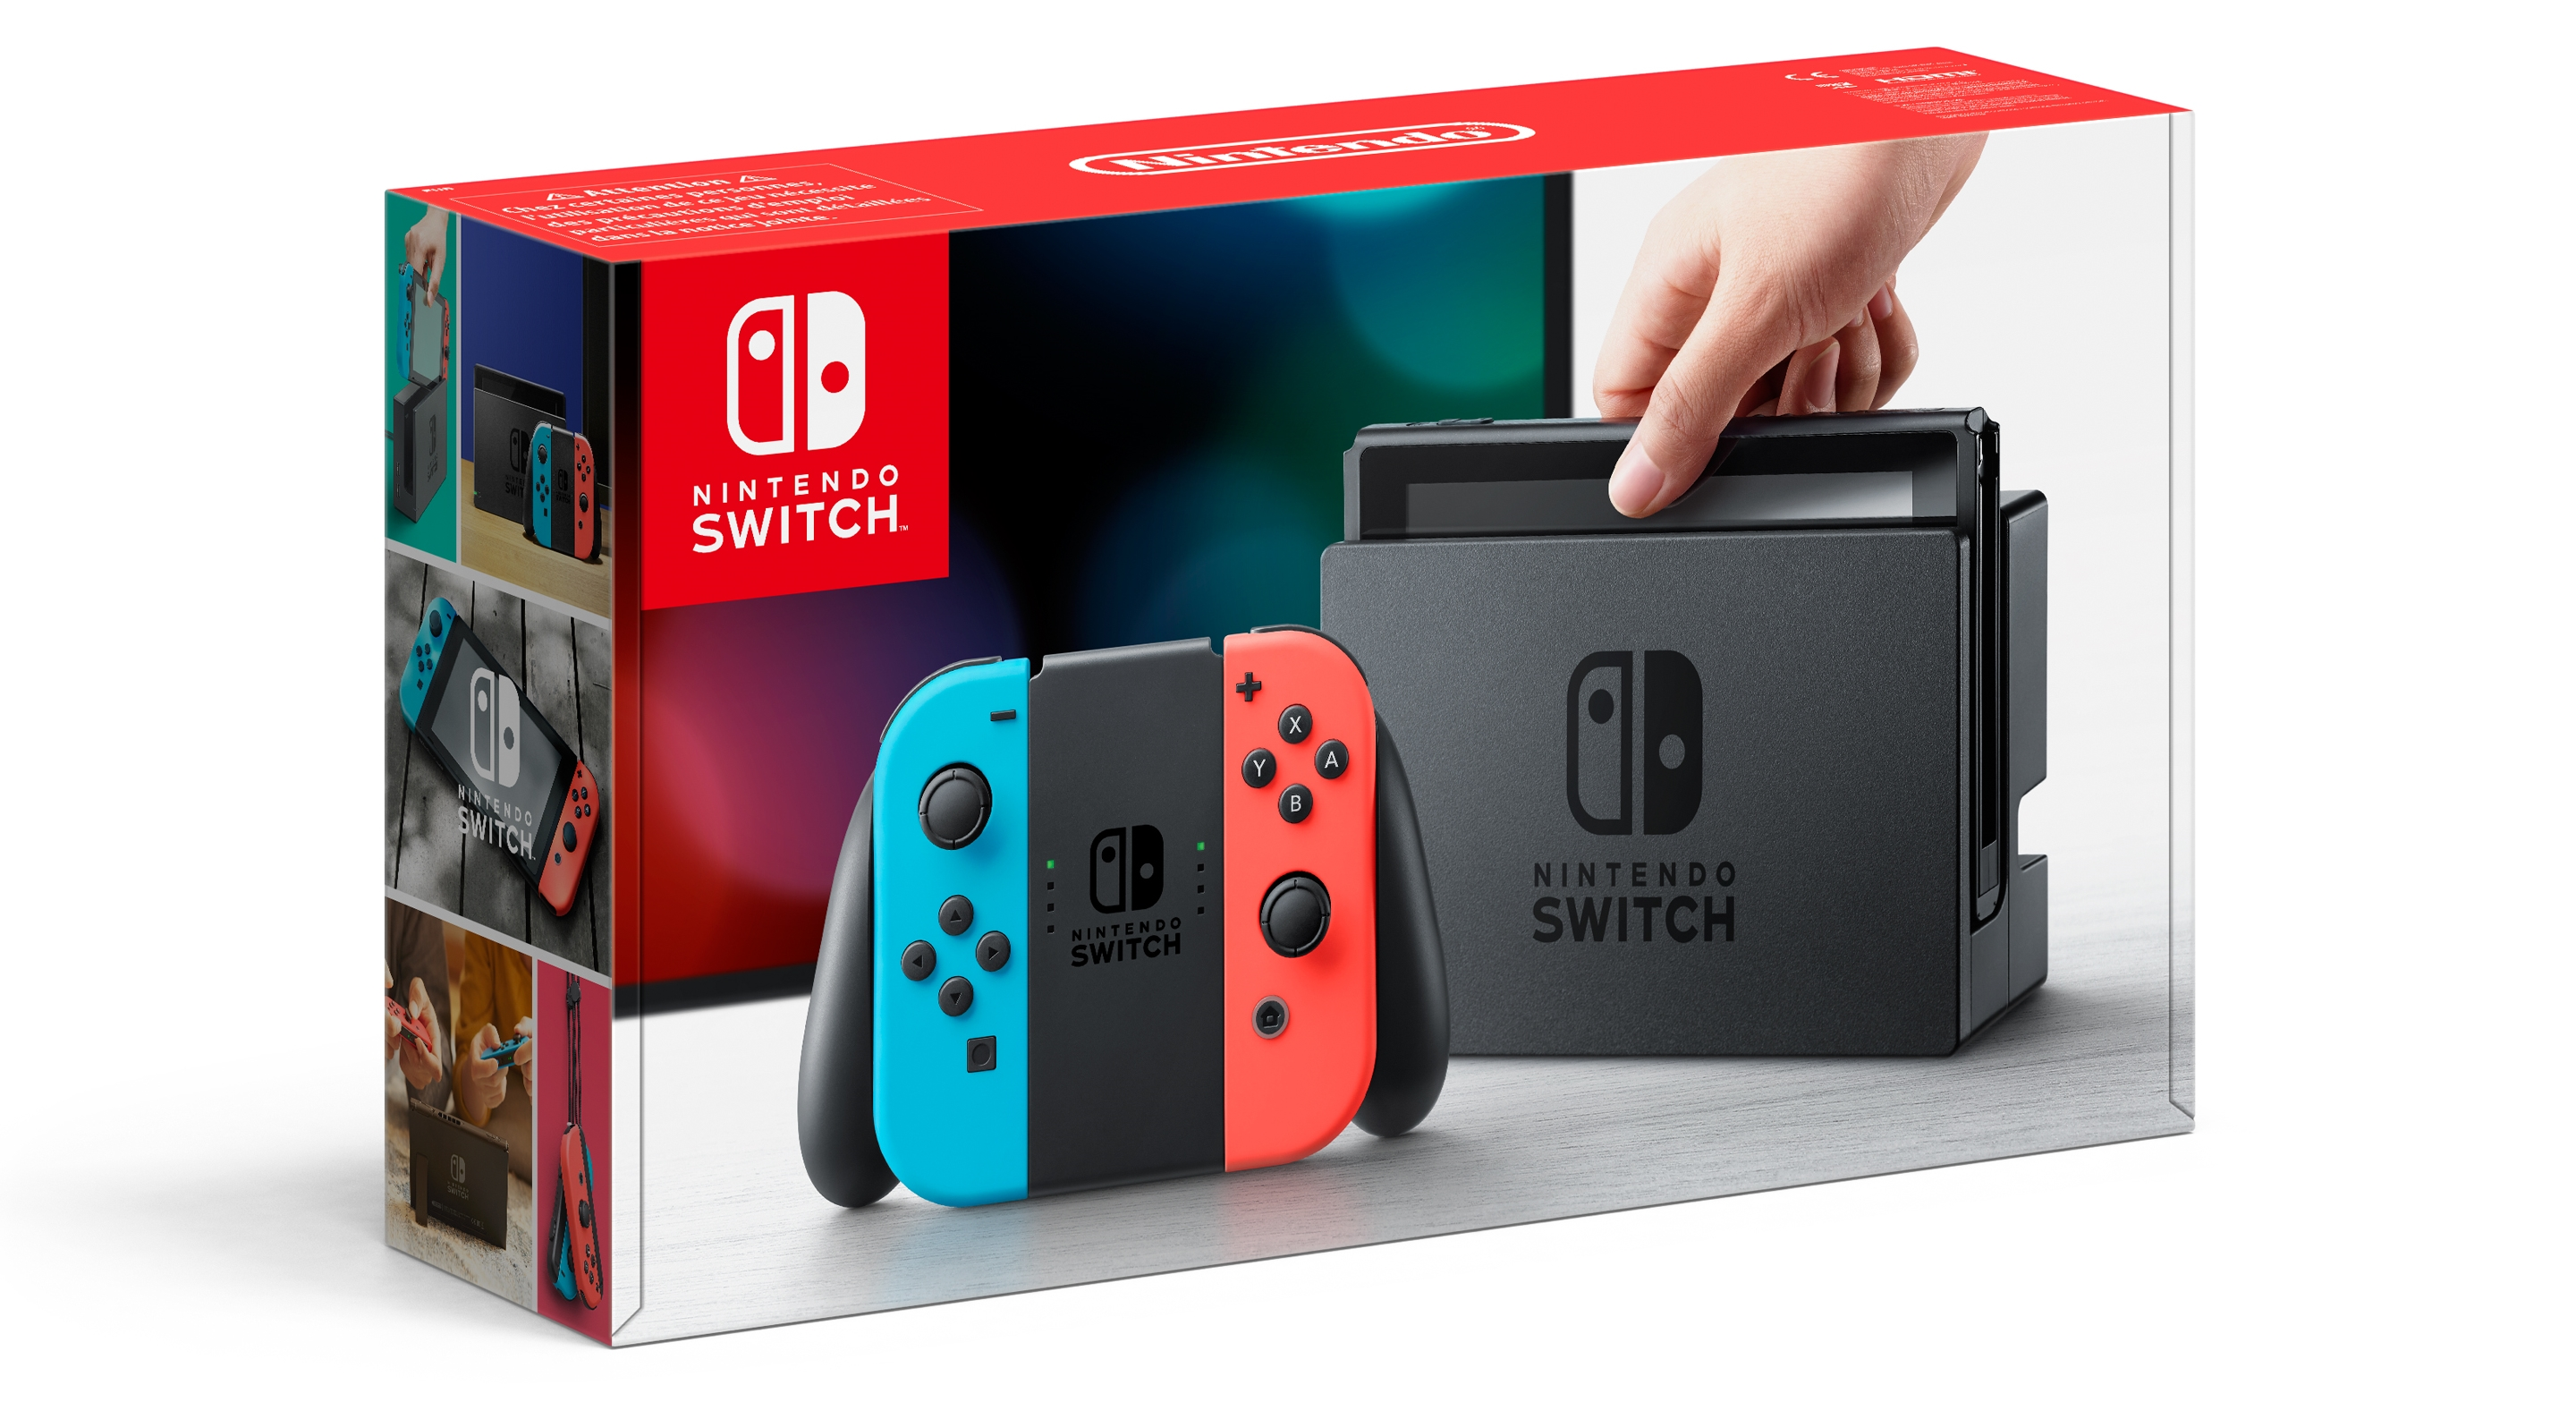 Nintendo Switch - not doomed after all?